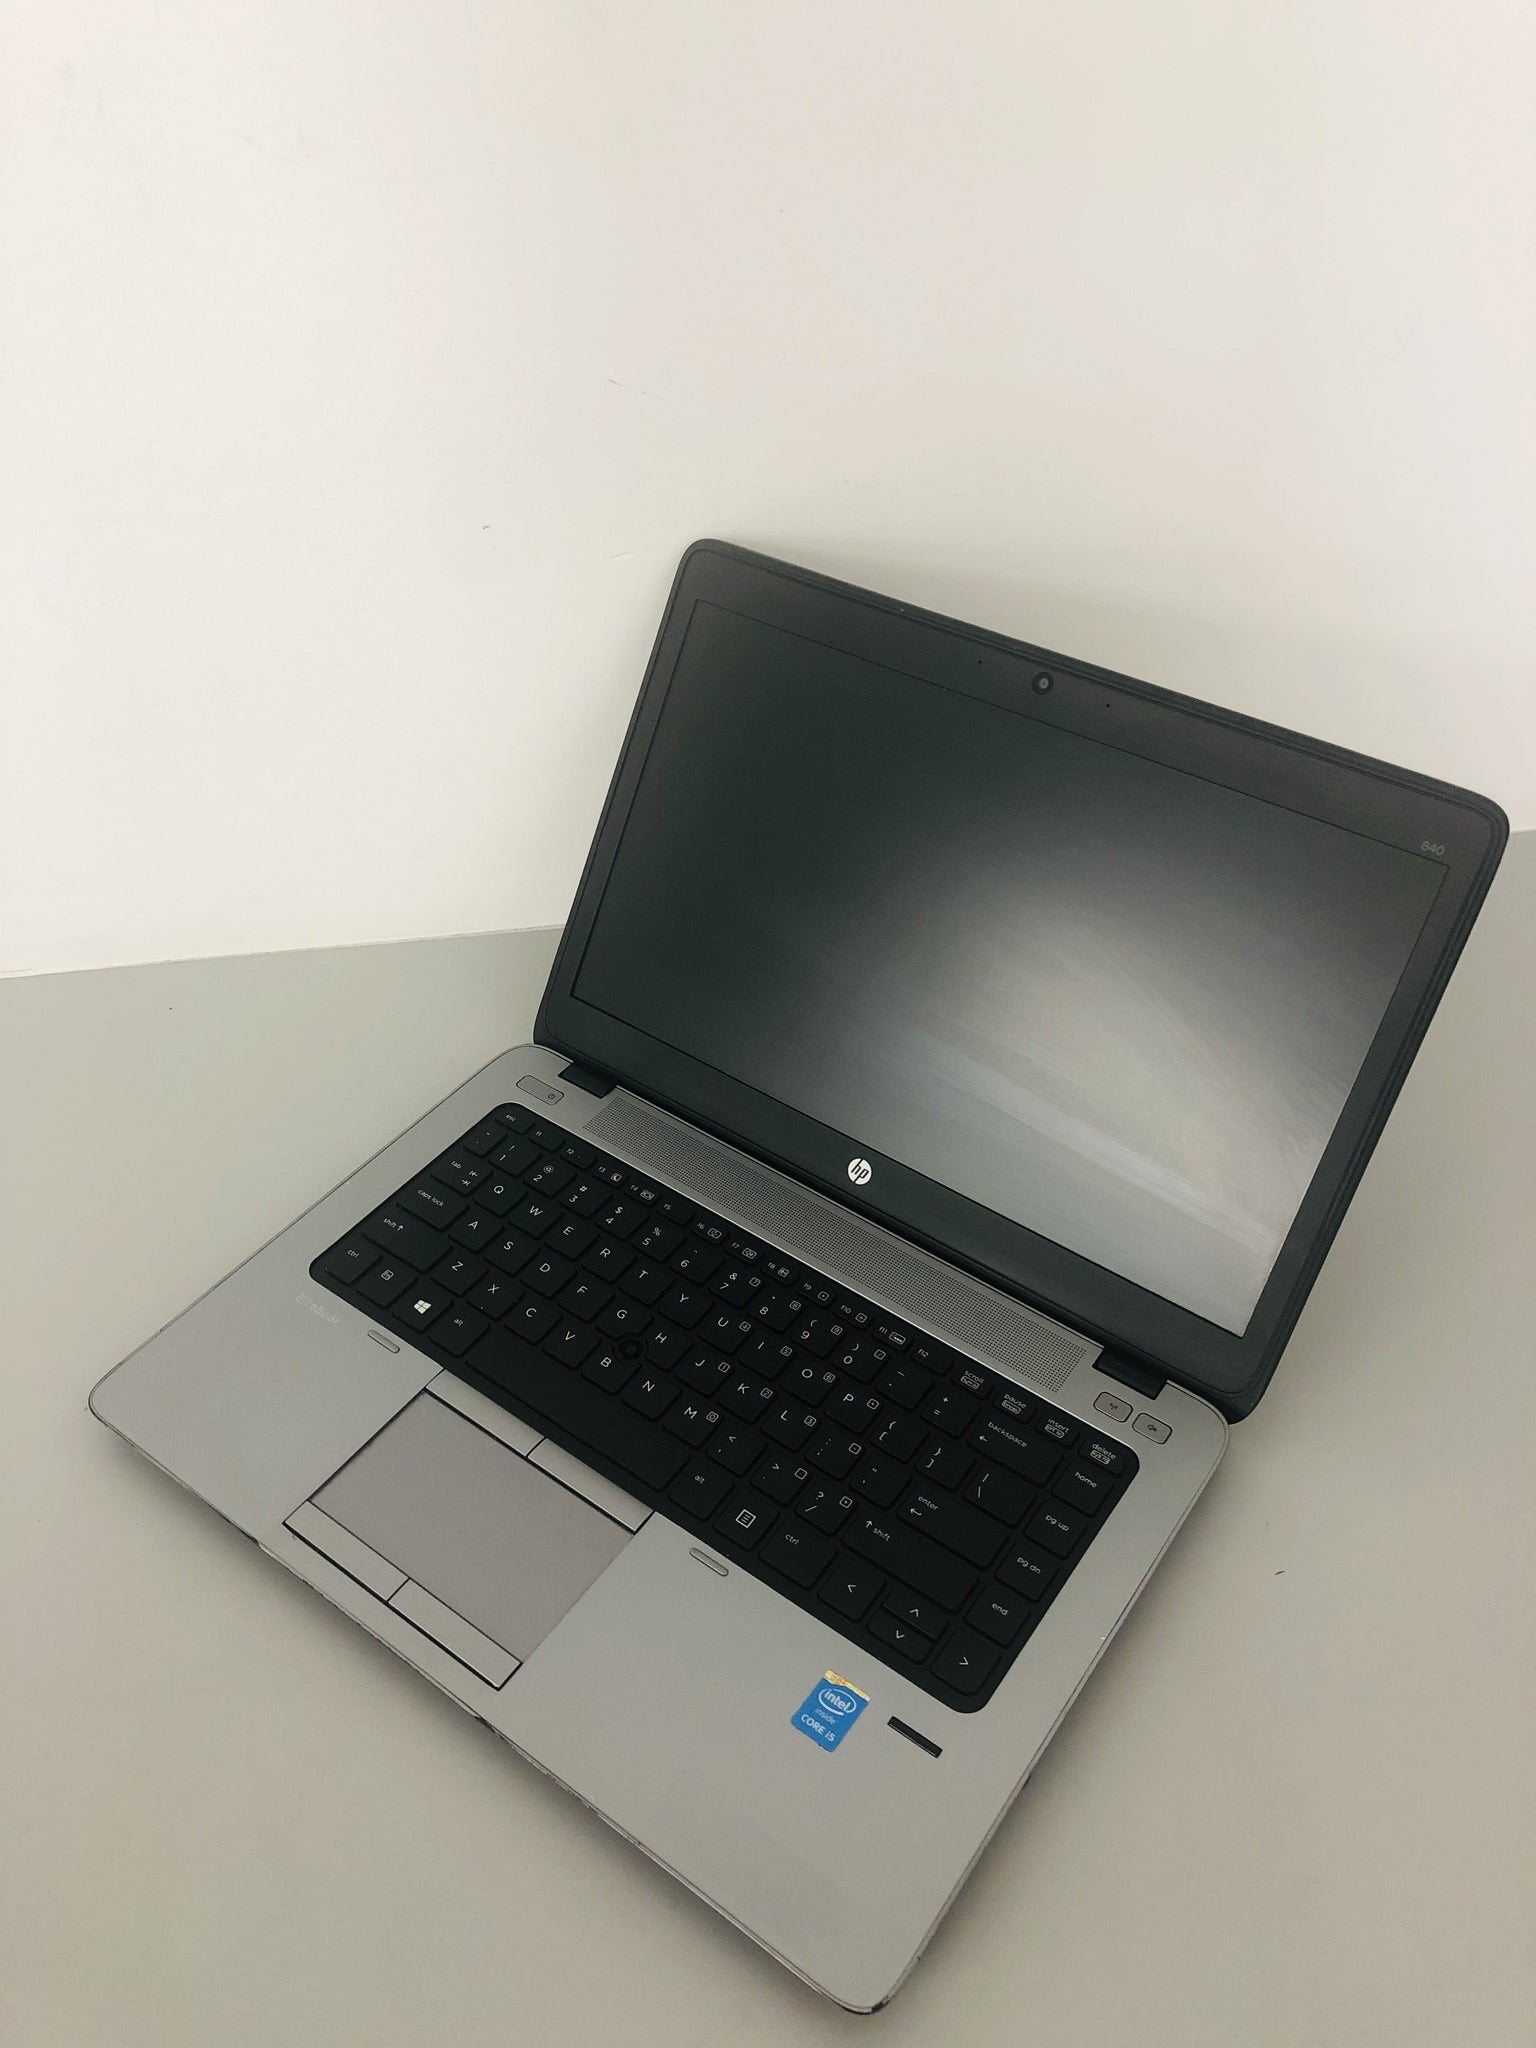 "B-Grade HP EliteBook 840 G1 Ex Lease Laptop i5-4210U 1.7GHz (TurboBoost to 2.7 GHz) 4GB RAM 500GB HDD 14"" WebCam Windows 10 Home(Blemish on screen/touchpad button not working)"